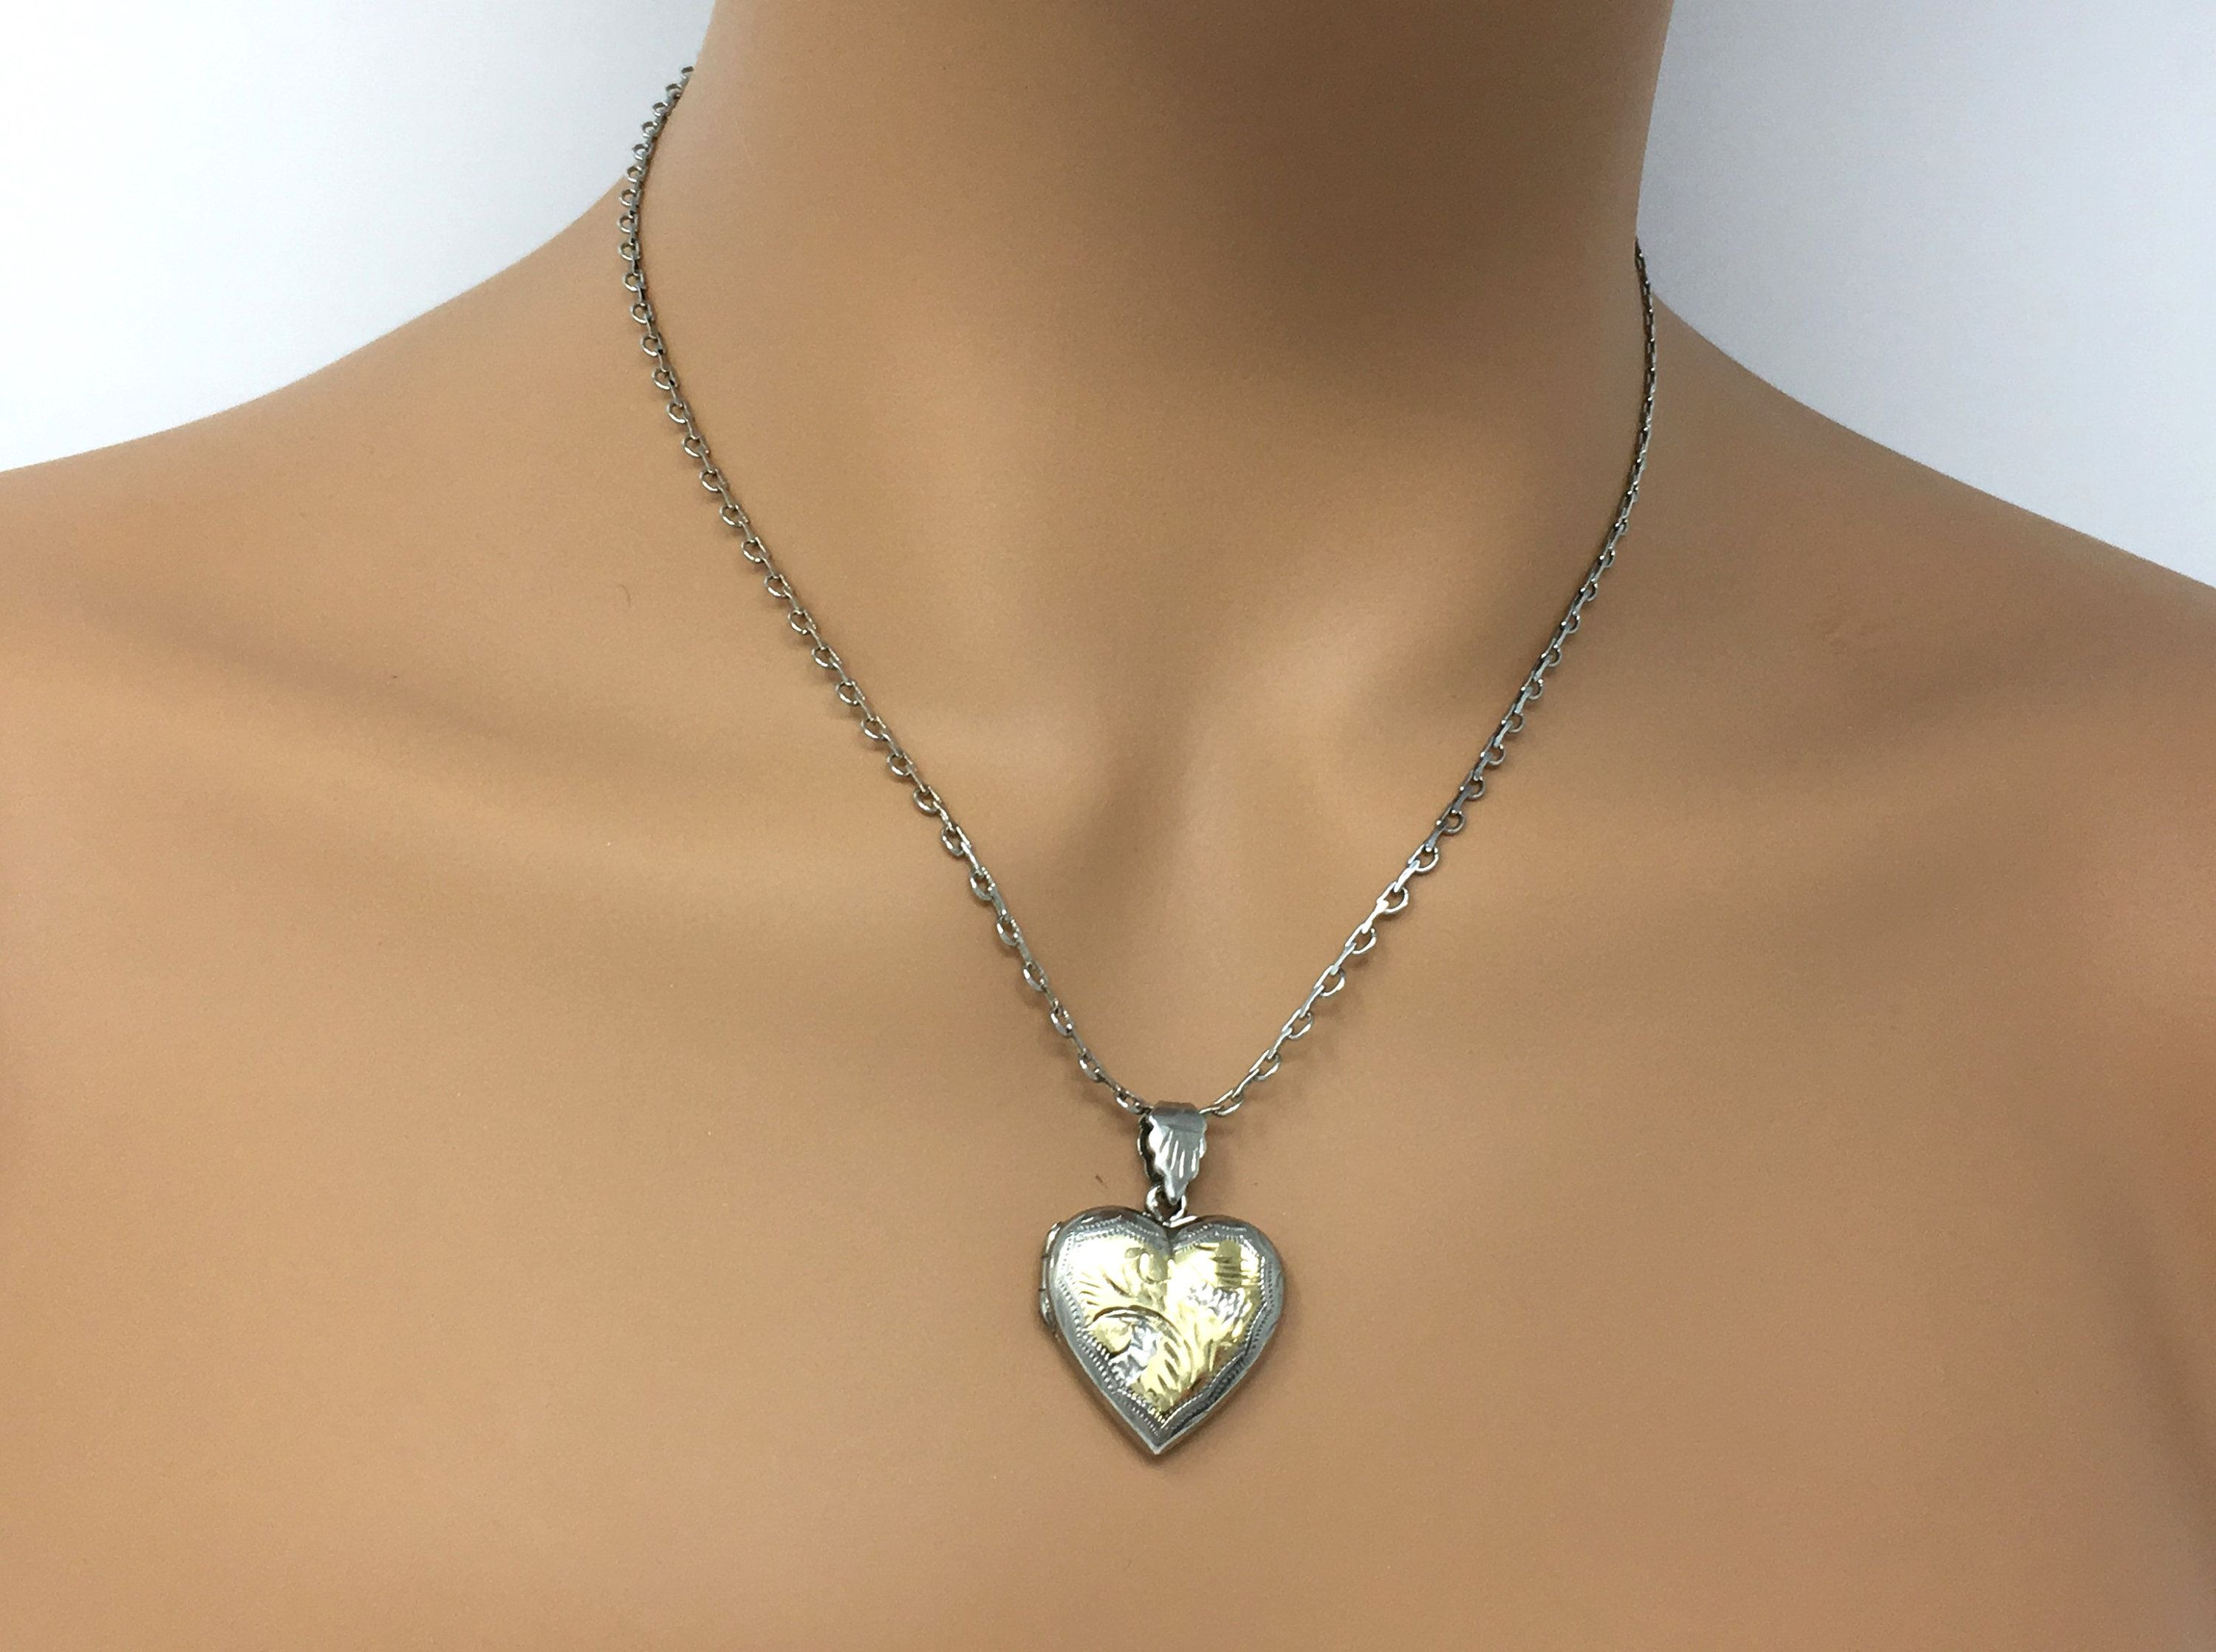 Vintage Sterling Puffy Heart Necklace Small Childs Heart Nexklace Etched Engraved Heart Necklace